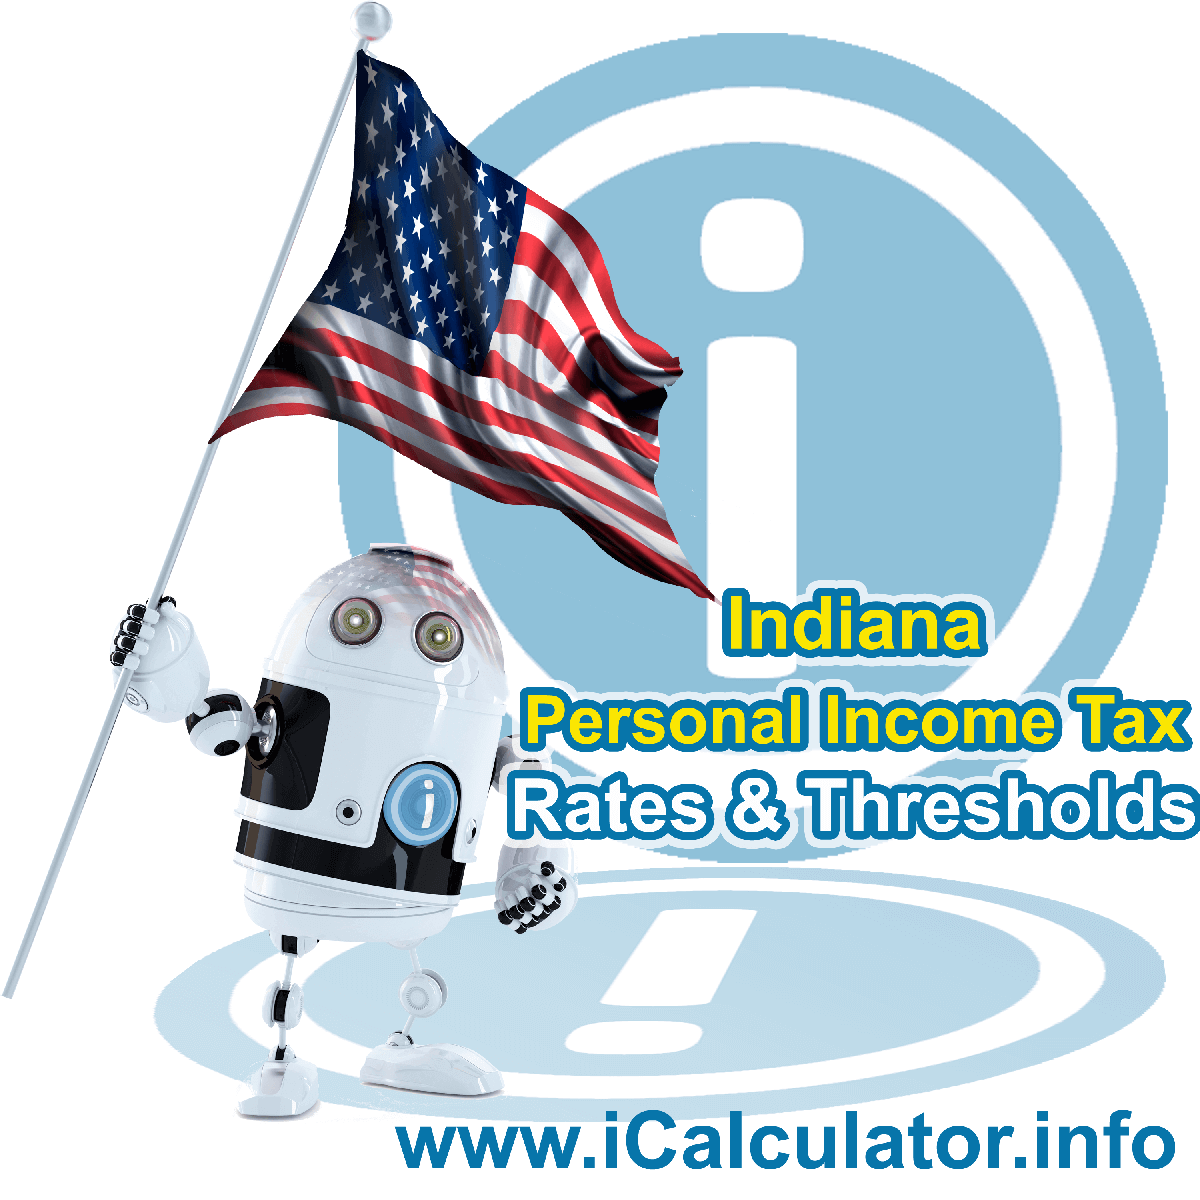 Indiana State Tax Tables 2016. This image displays details of the Indiana State Tax Tables for the 2016 tax return year which is provided in support of the 2016 US Tax Calculator